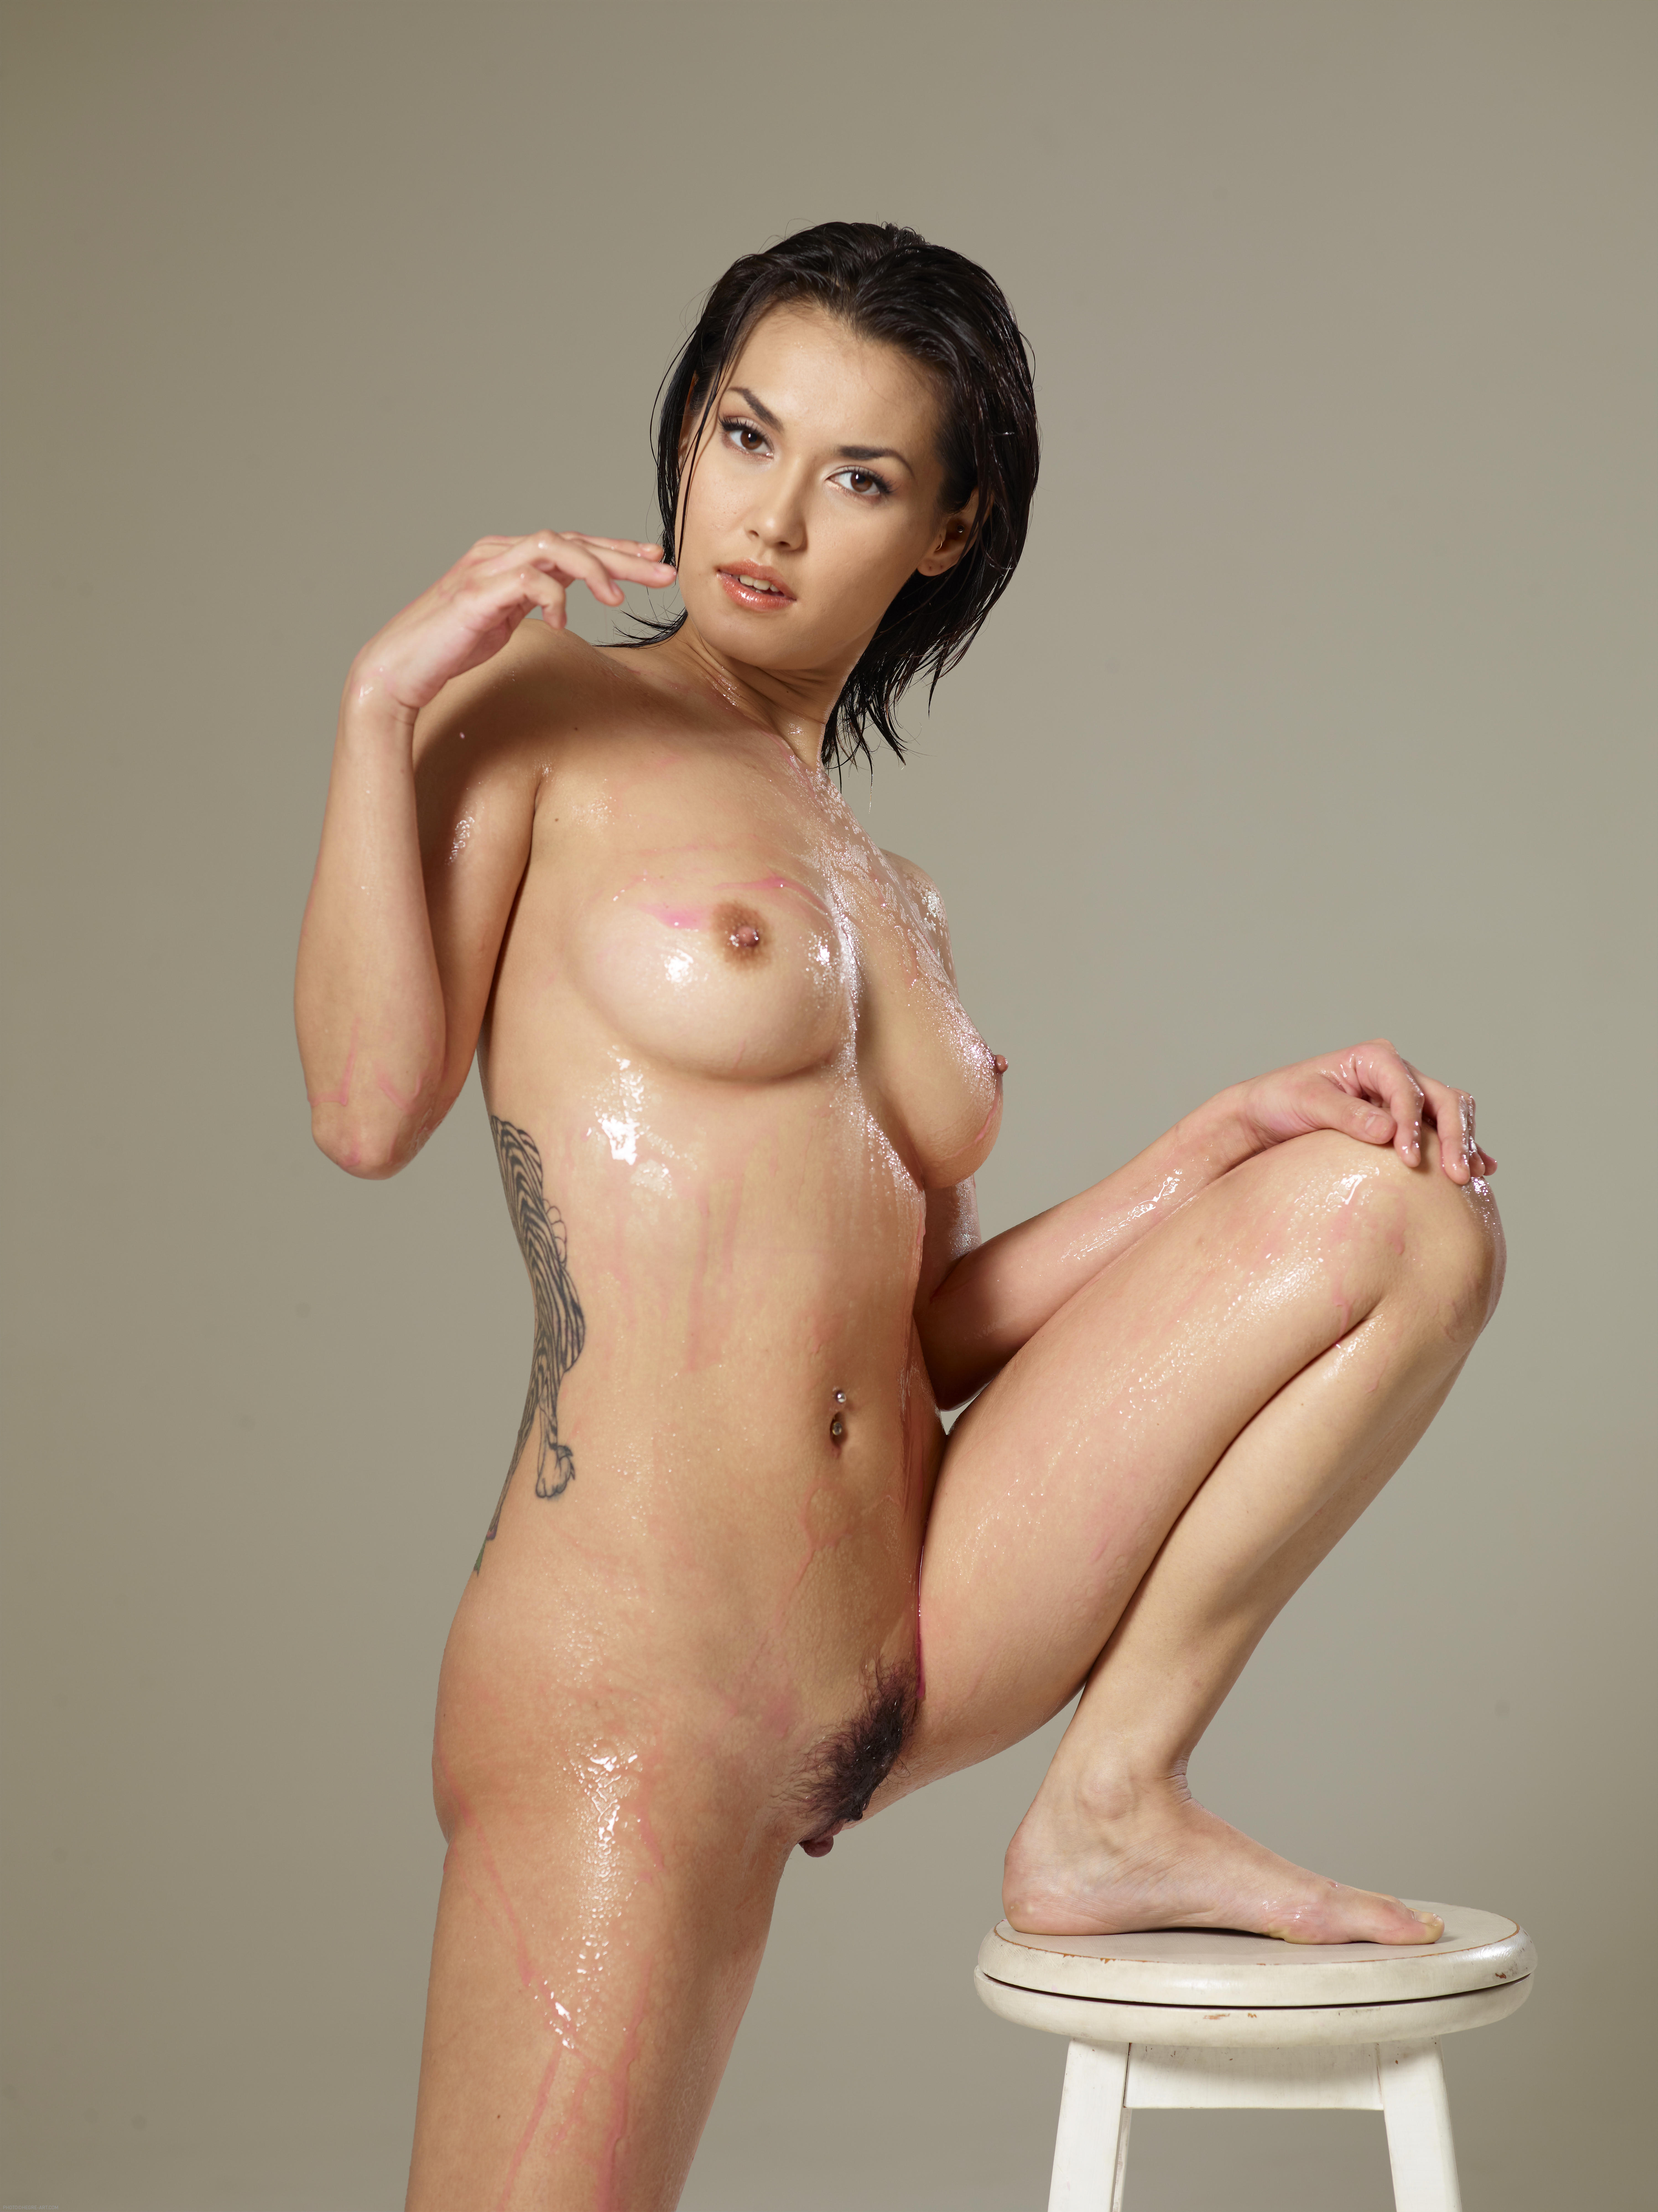 Hummmmmm Love massage maria ozawa hot!!  Just